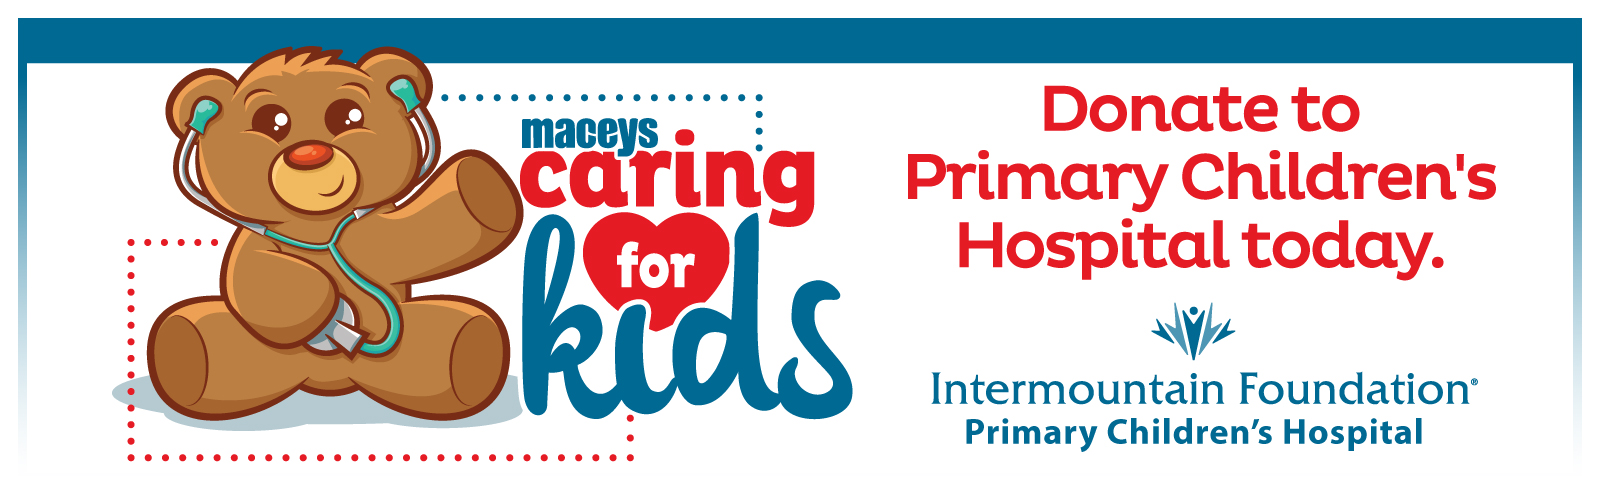 Caring For Kids Drive